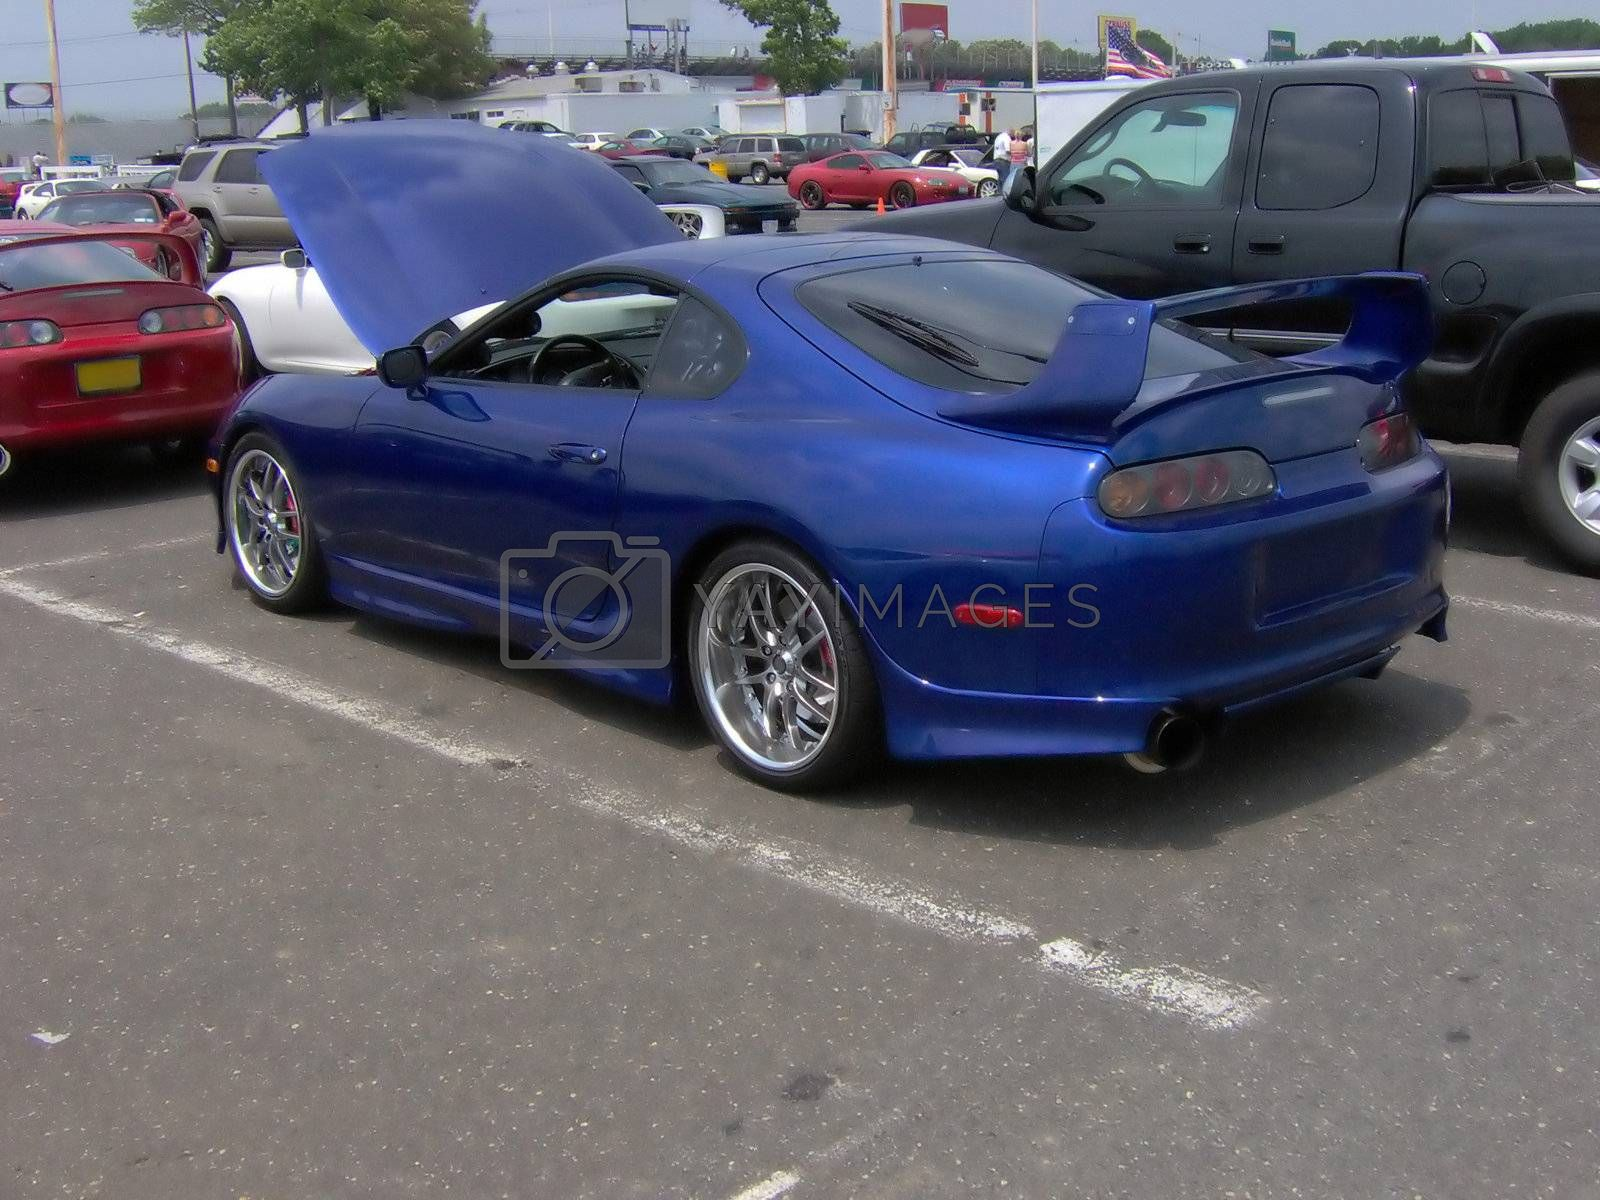 This is the sickest kind of Japanese sports car ever made.